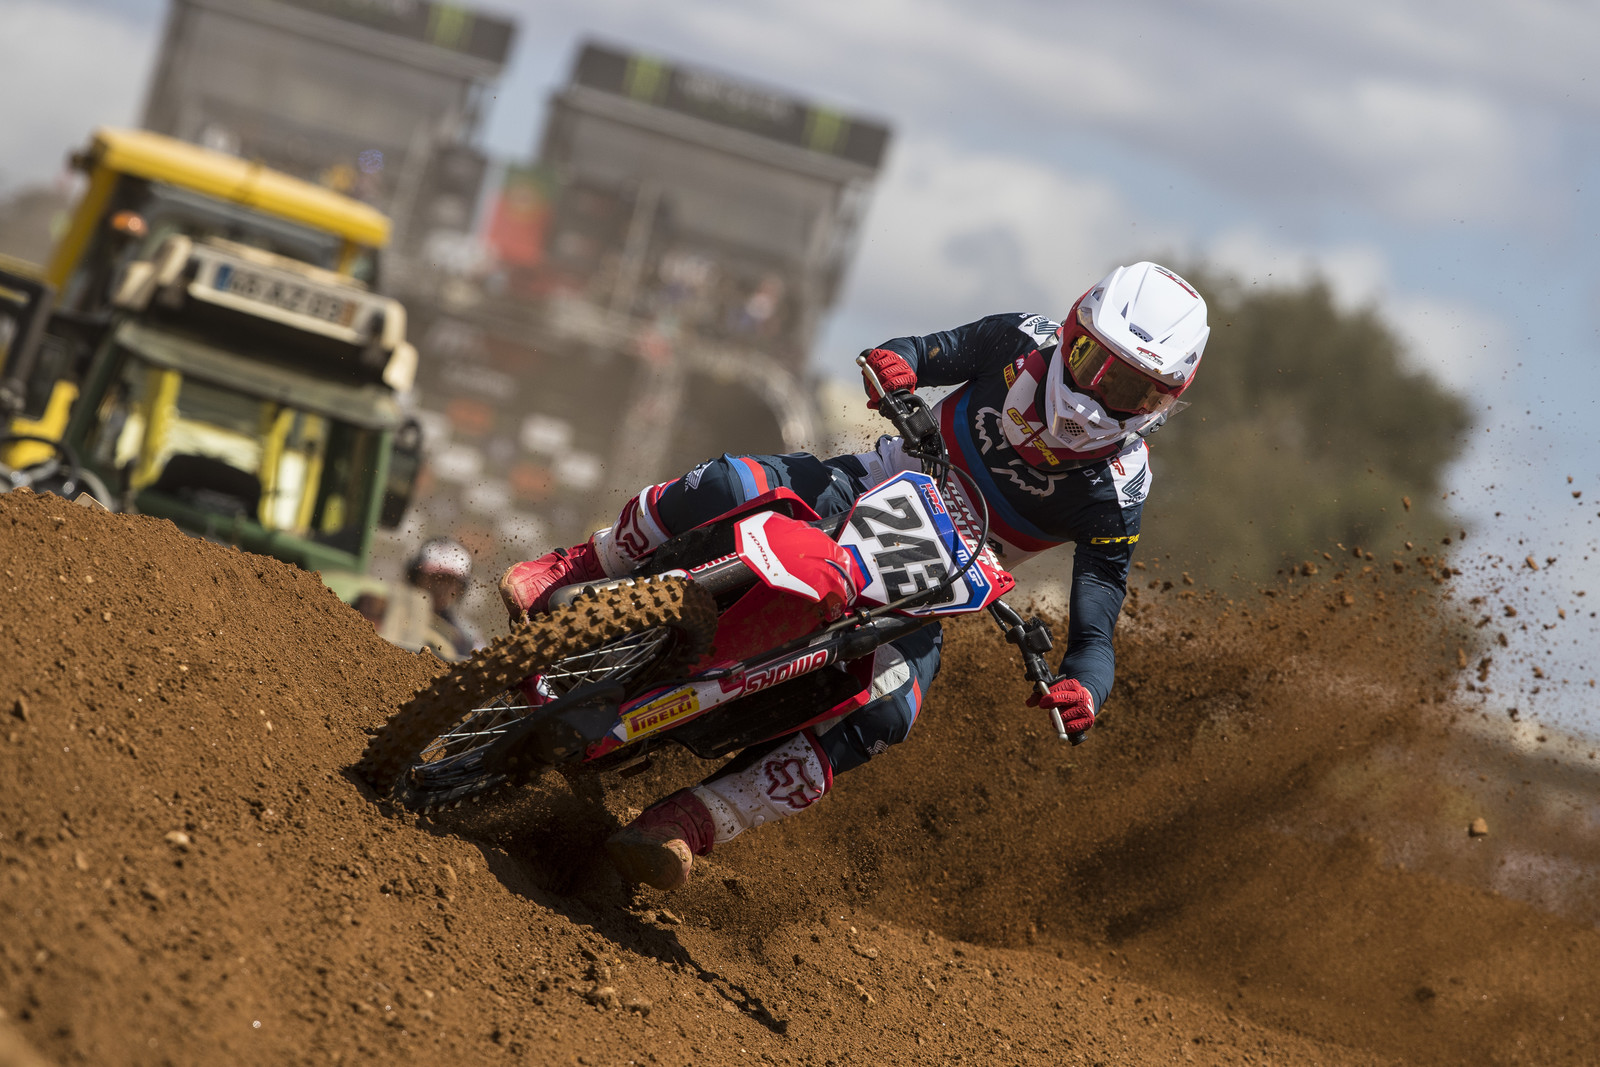 "Tim Gajser - ""It was really great to come away with two wins and the overall here in Portugal. I put last weekend behind me and I knew that if I focused and rode like I know how to ride, I could do well at this Agueda track. Still, to get both moto victories is a great confidence booster and backs up my win in Trentino very nicely. I now have the fastest laps in the last four motos so my speed is good and I know I am feeling strong too. These back to back races are tough but I head to France really happy with my riding and confident that the bike and I are working well together. A big thanks to the team for working so hard to help make this happen, and let's keep up the effort!"""